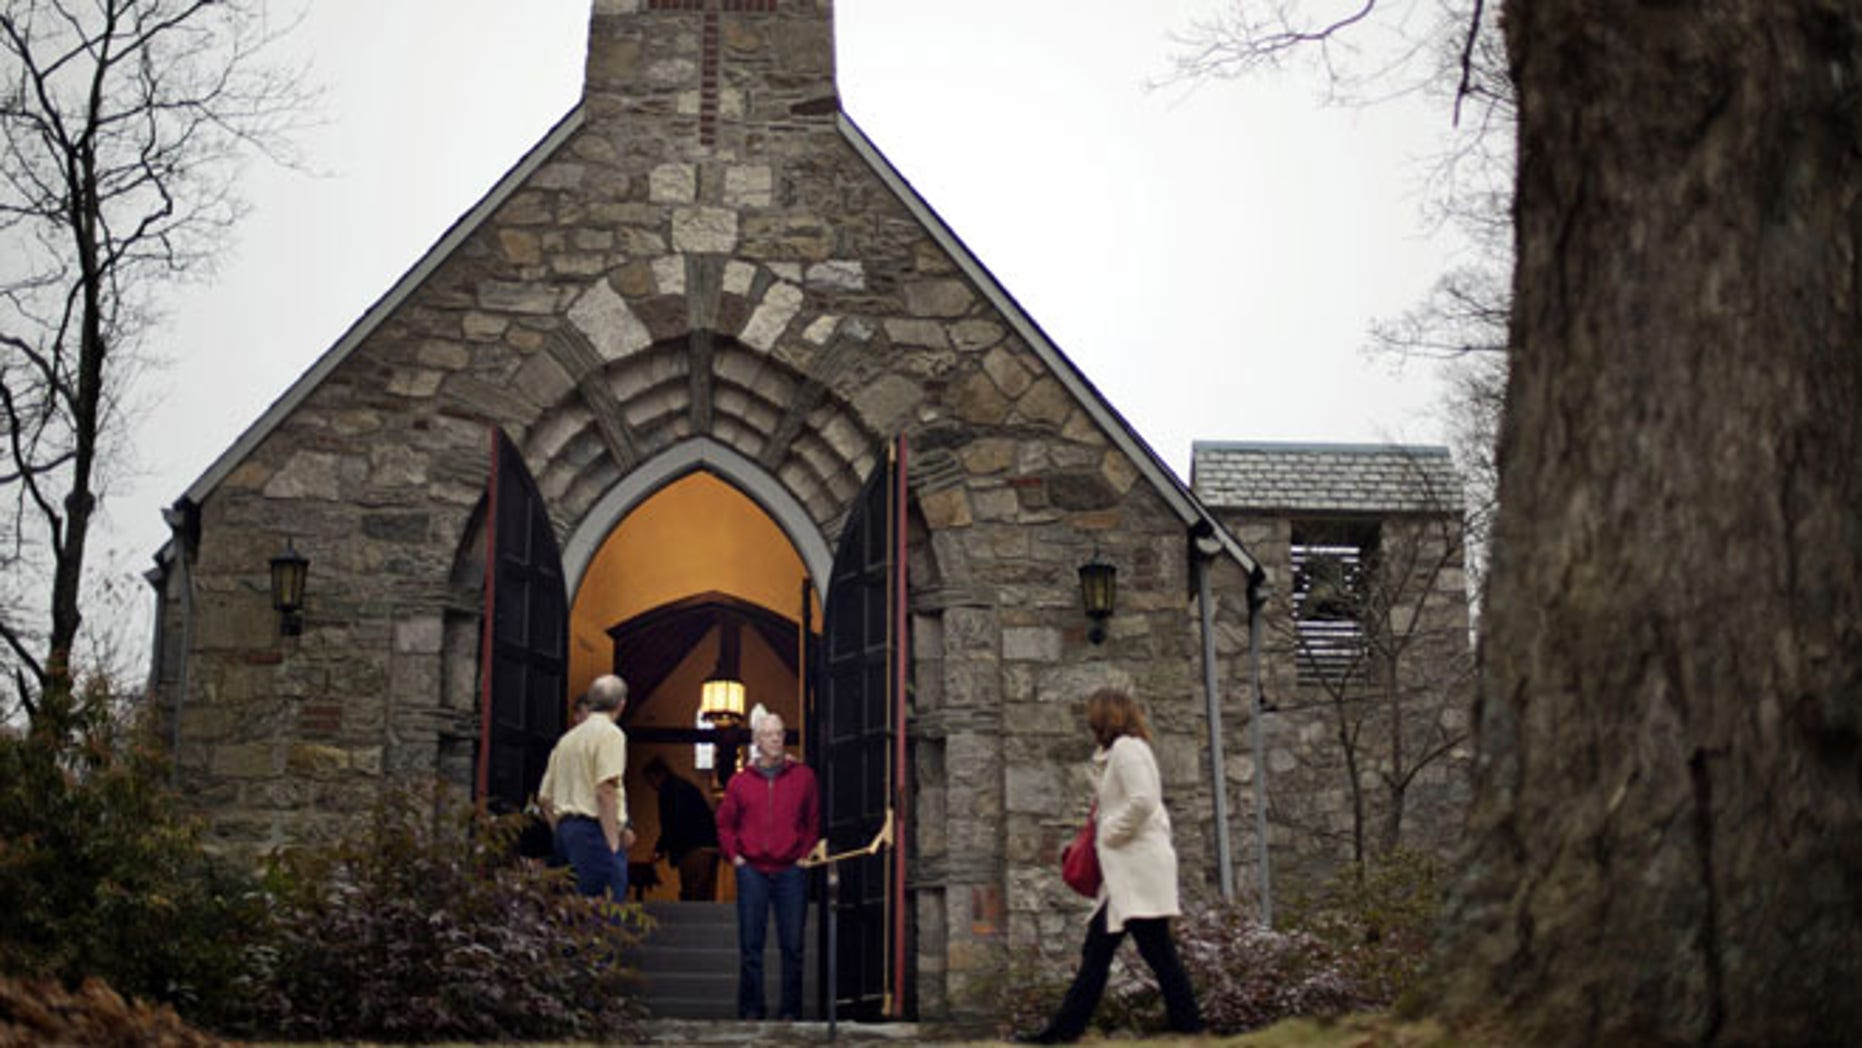 Dec. 16, 2012: A churchgoer enters a service at at St John's Episcopal Church, in Newtown, Conn.